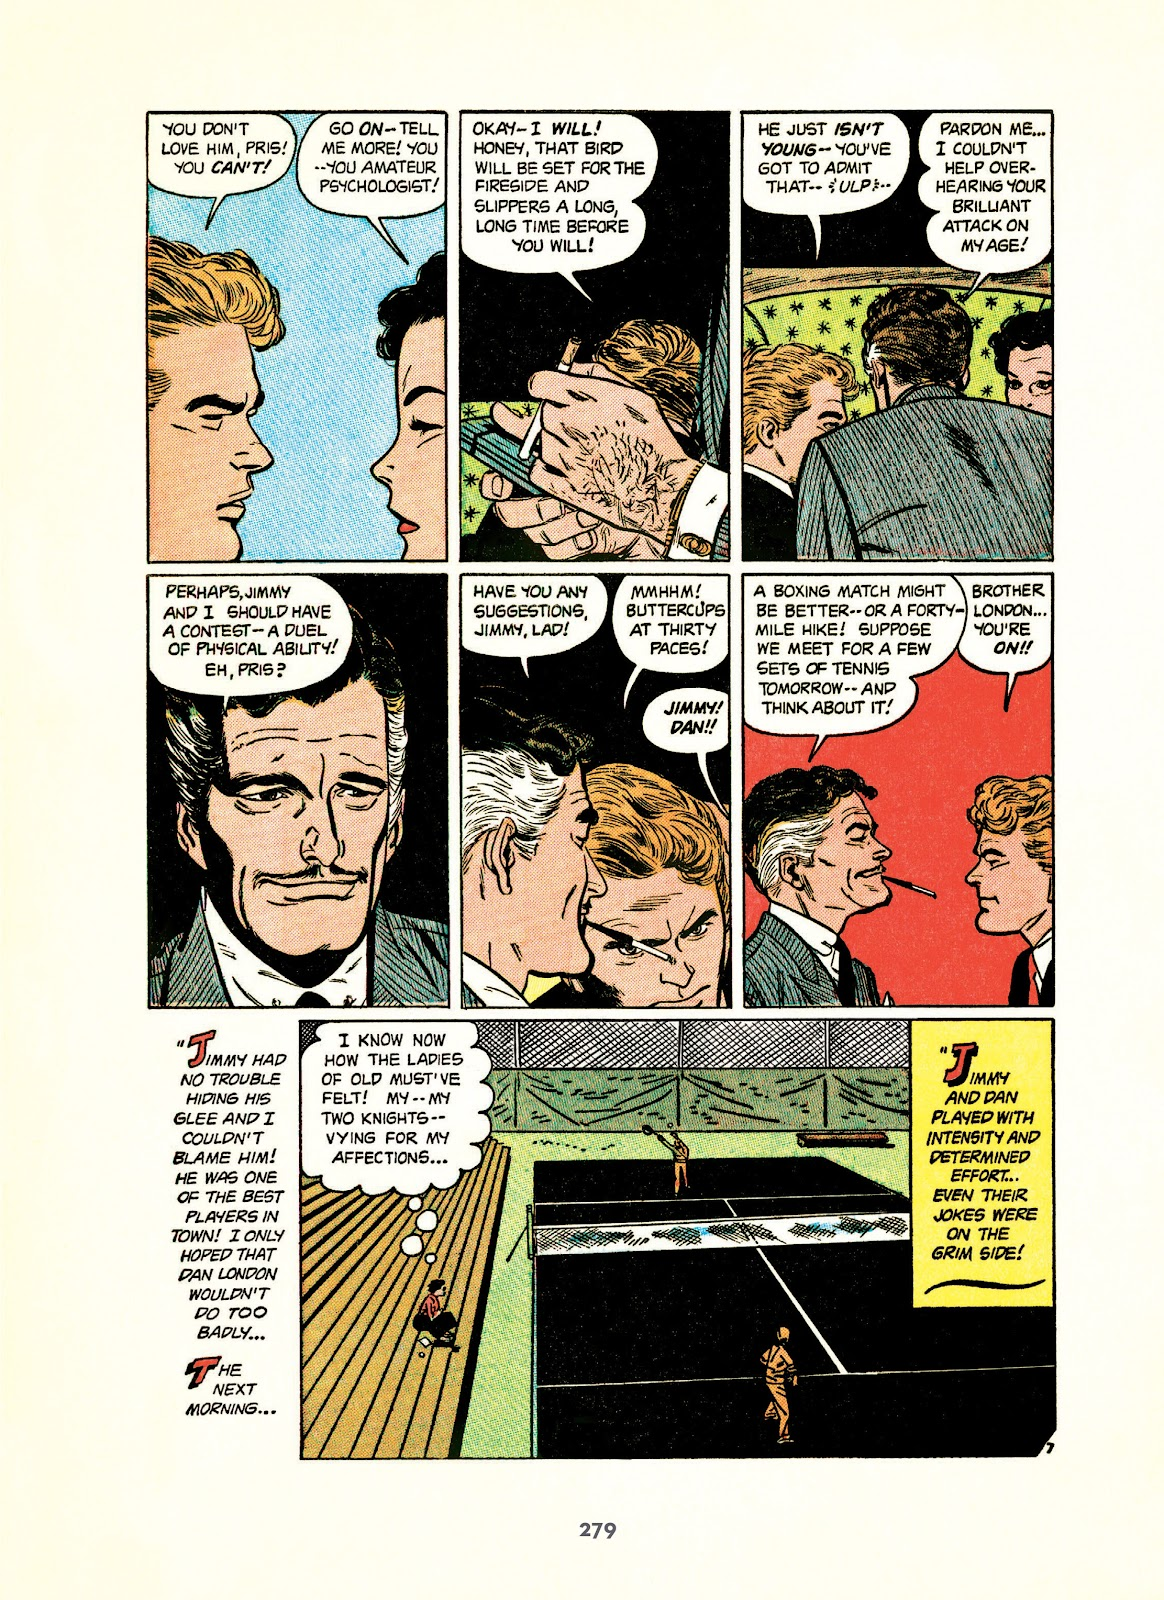 Read online Setting the Standard: Comics by Alex Toth 1952-1954 comic -  Issue # TPB (Part 3) - 80